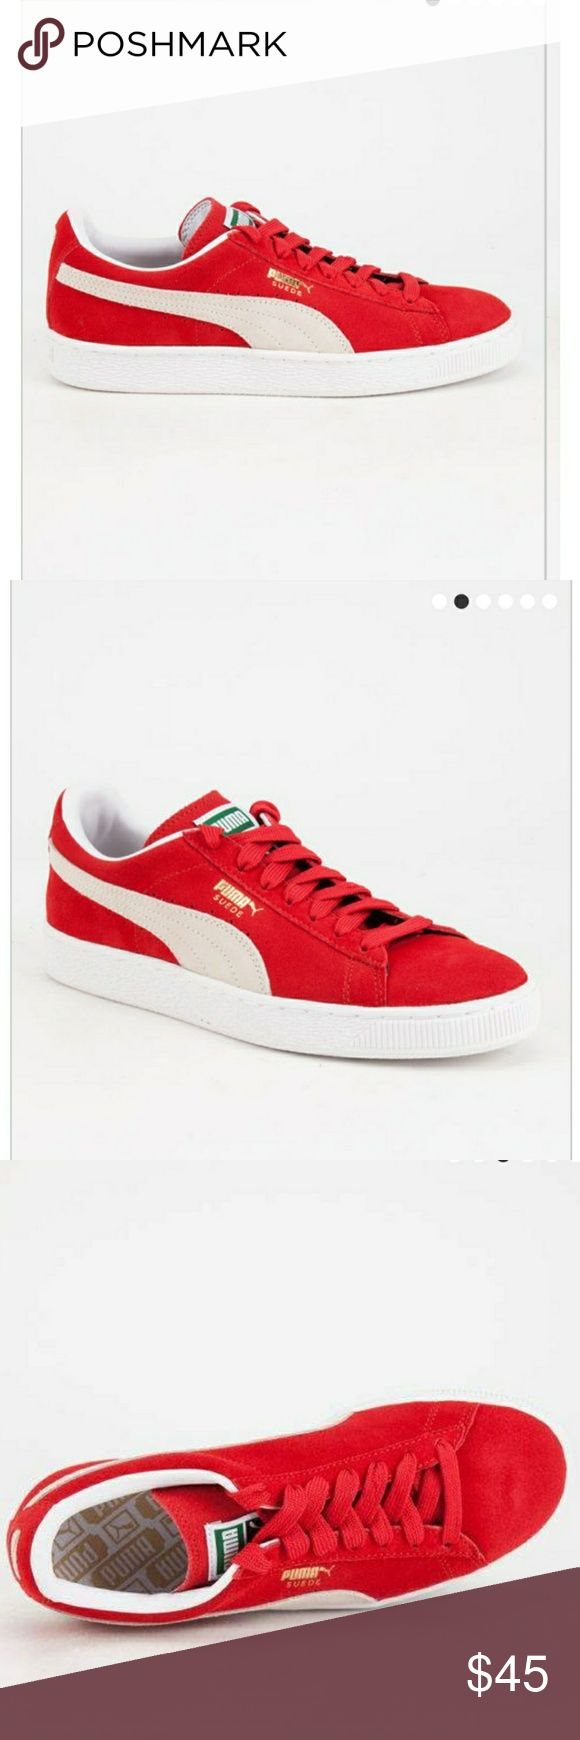 Red puma classics. Brand new still in the box.   Puma Suede Classic shoes. Suede upper with perforated detailing at midfoot. Puma Formstrip at sides. Lace closure for snug fit. Breathable EcoOrthoLite® sockliner. Woven label on tongue. Rubber outsole. Imported. Puma Shoes Sneakers